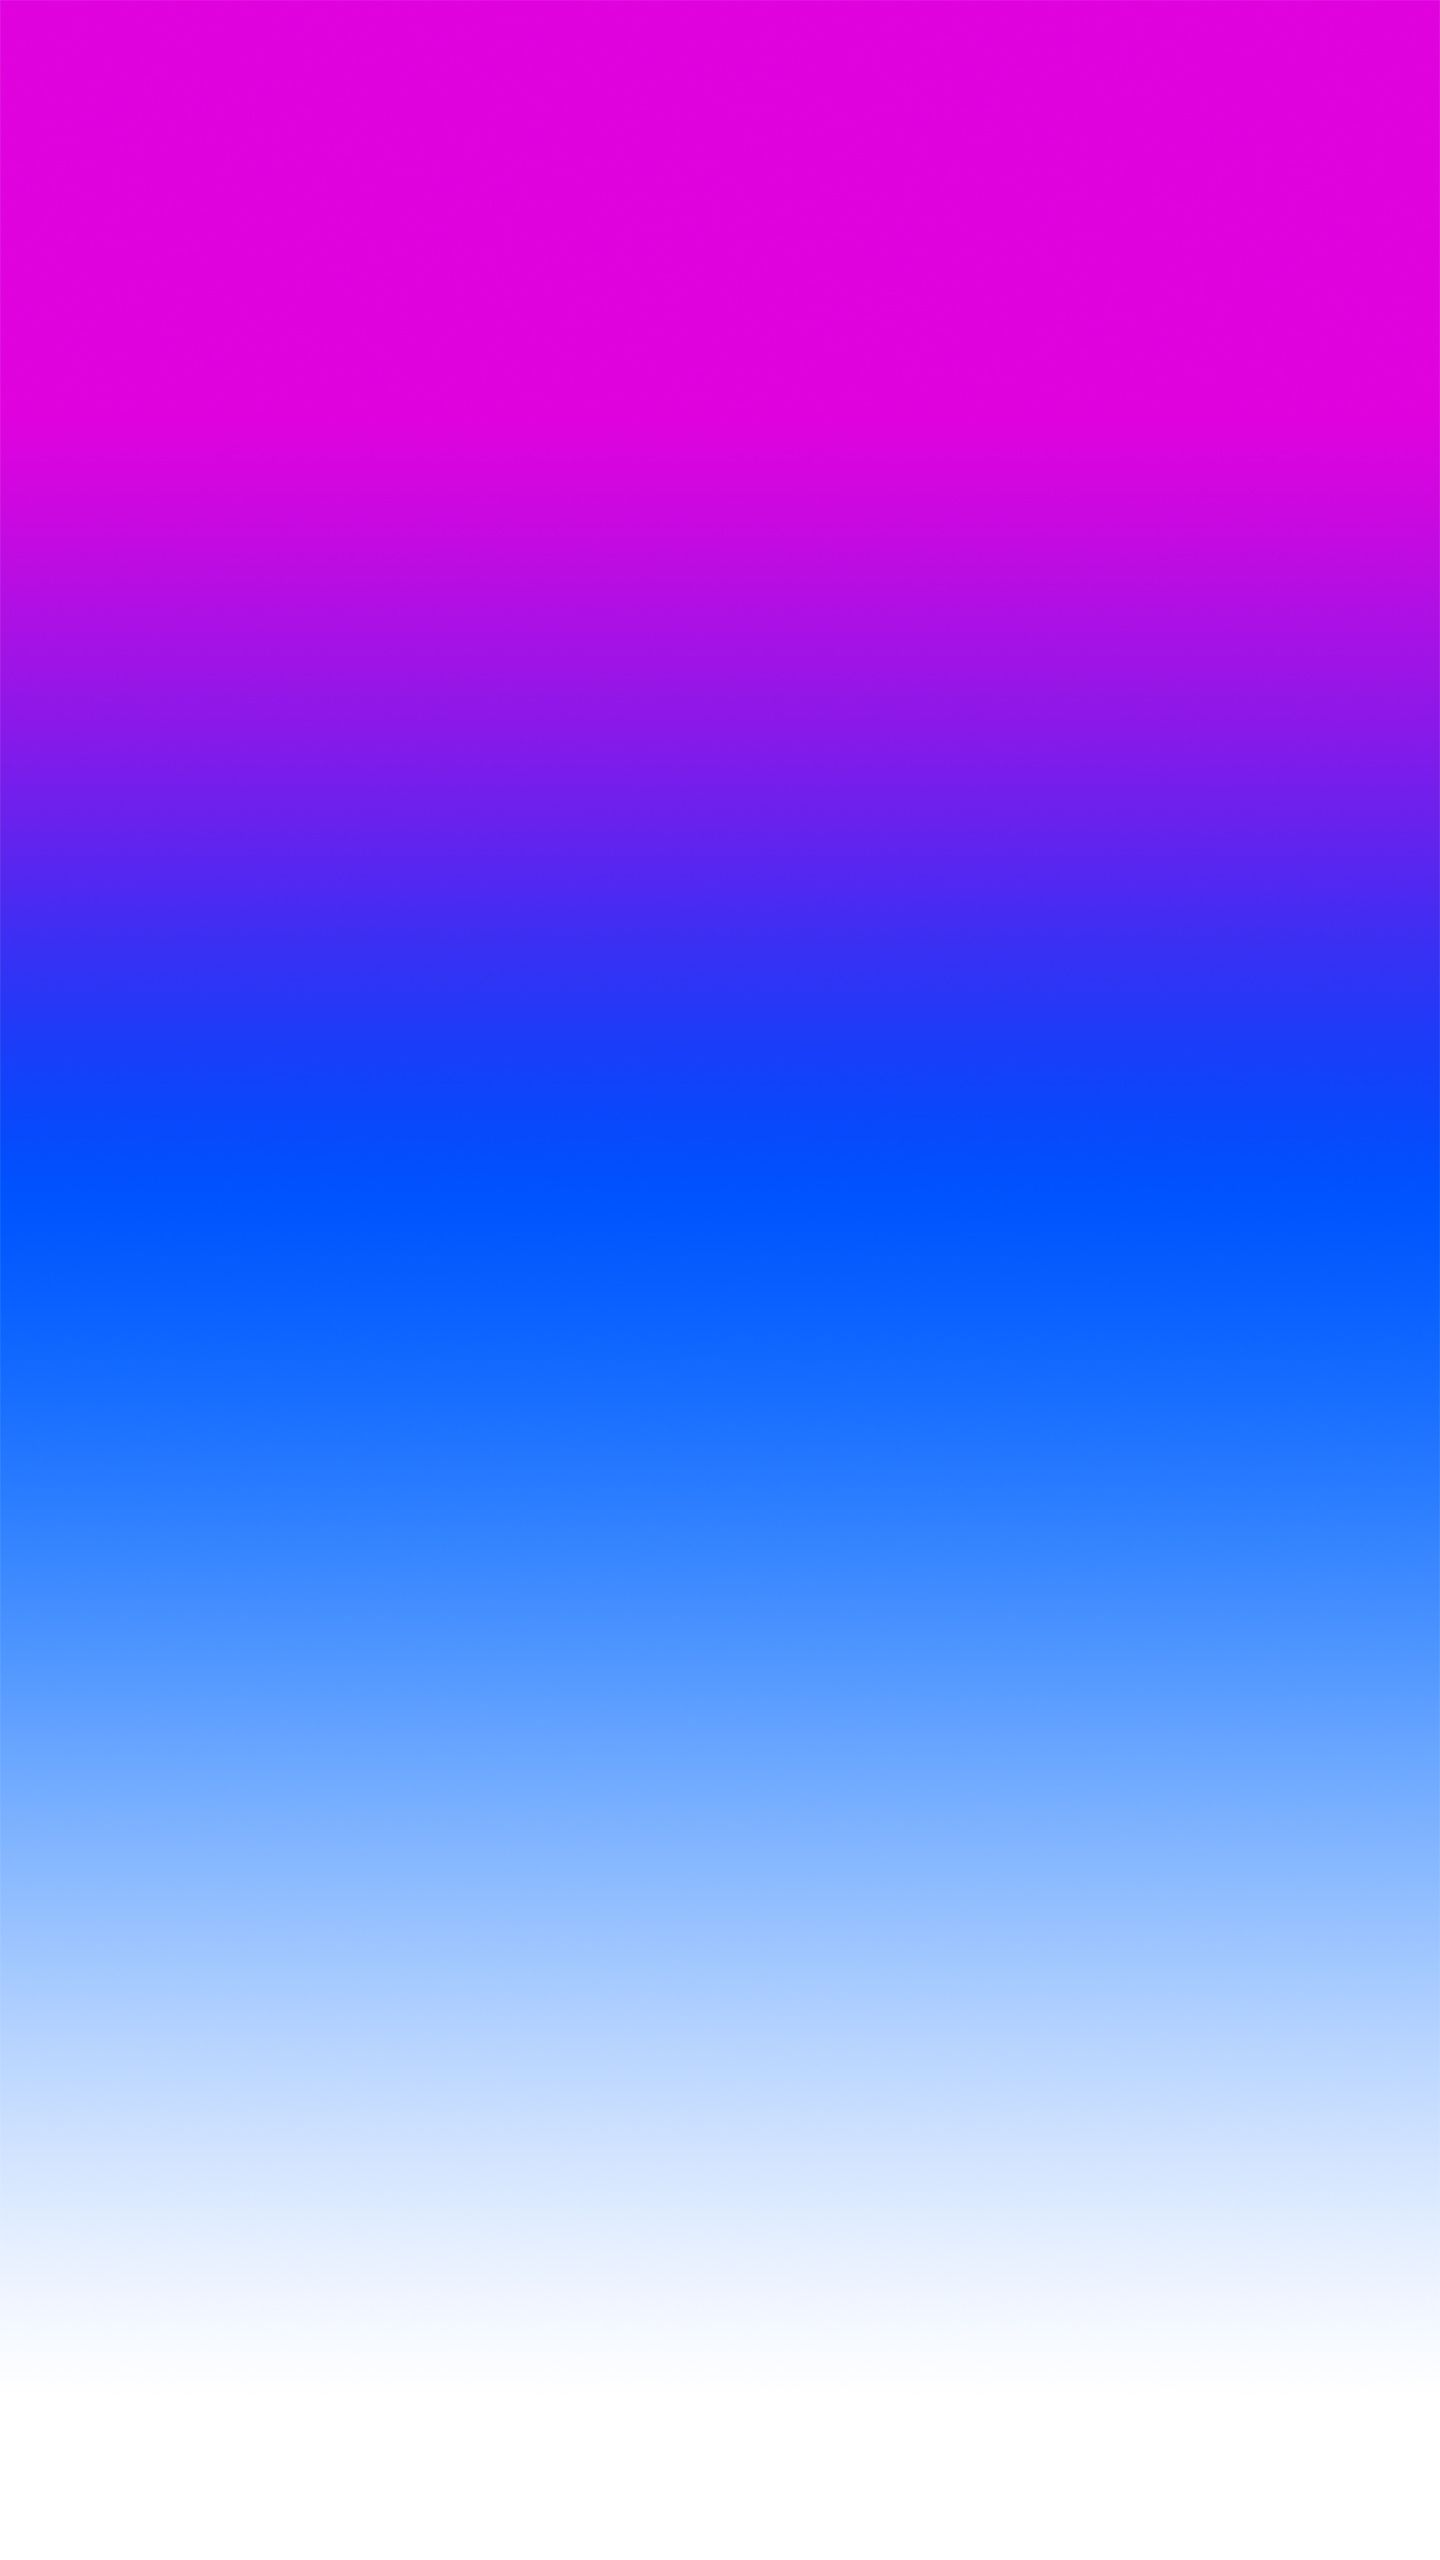 Mix Color_pink Blue White (2560x1440)   Color Mixing, Abstract Iphone  Wallpaper, Ombre Background